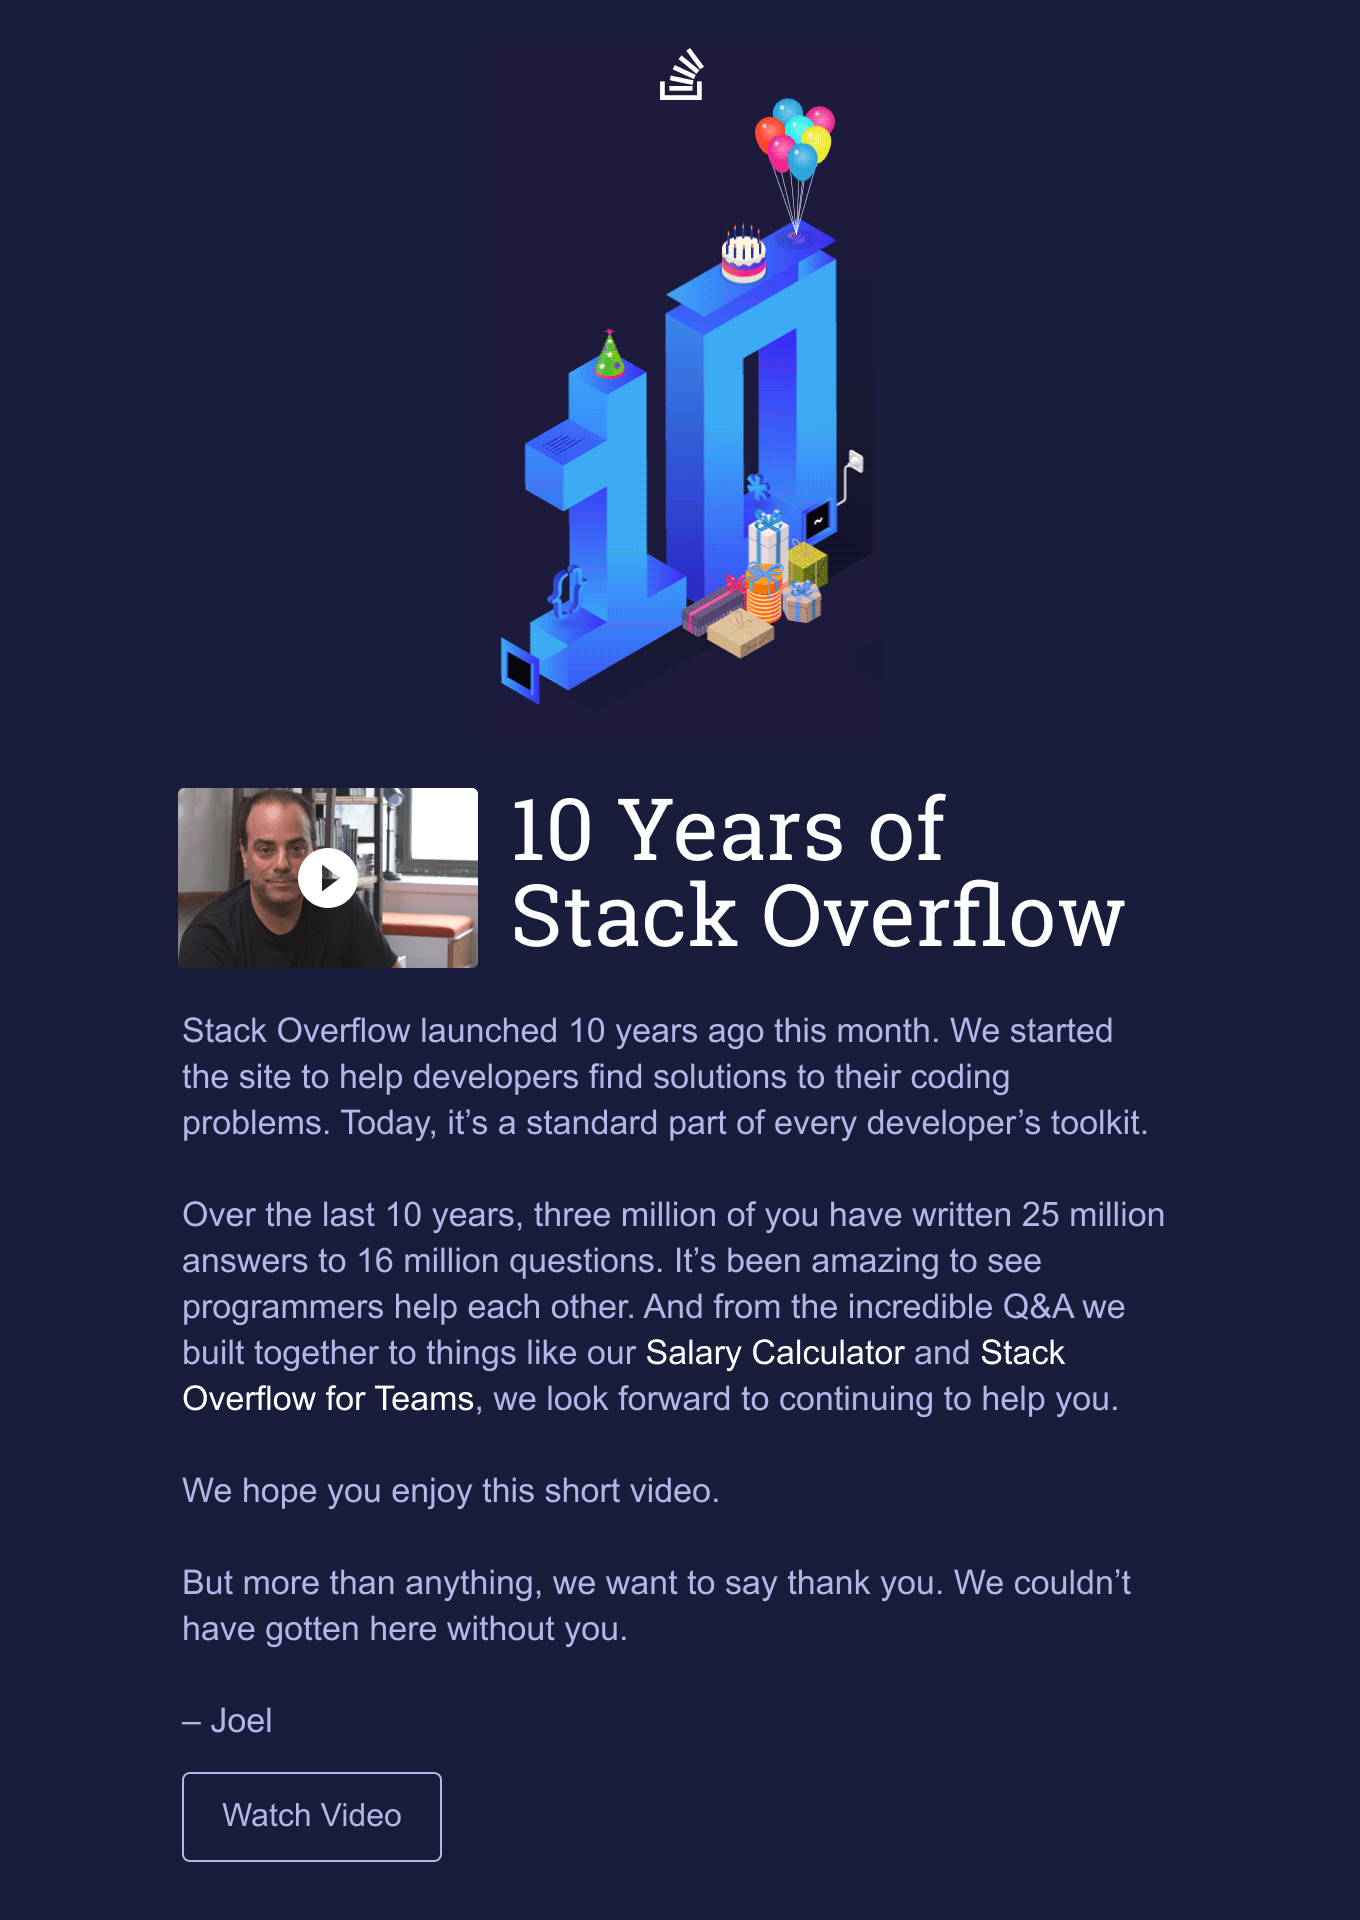 10th anniversary email.